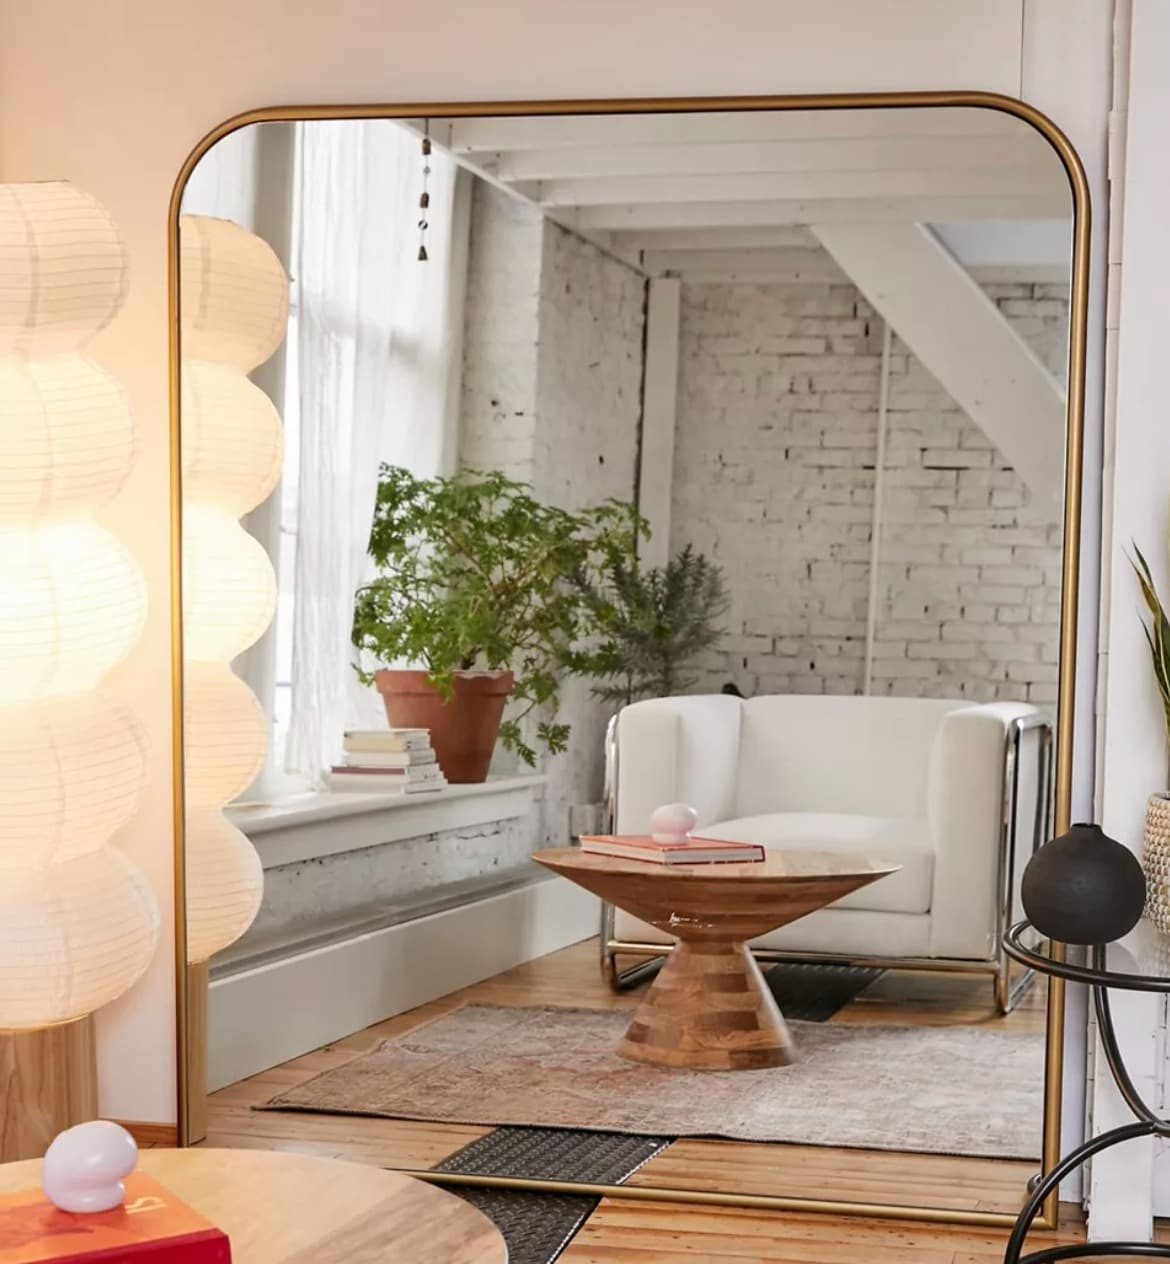 Maximize Space With an Extra Large Floor Mirror